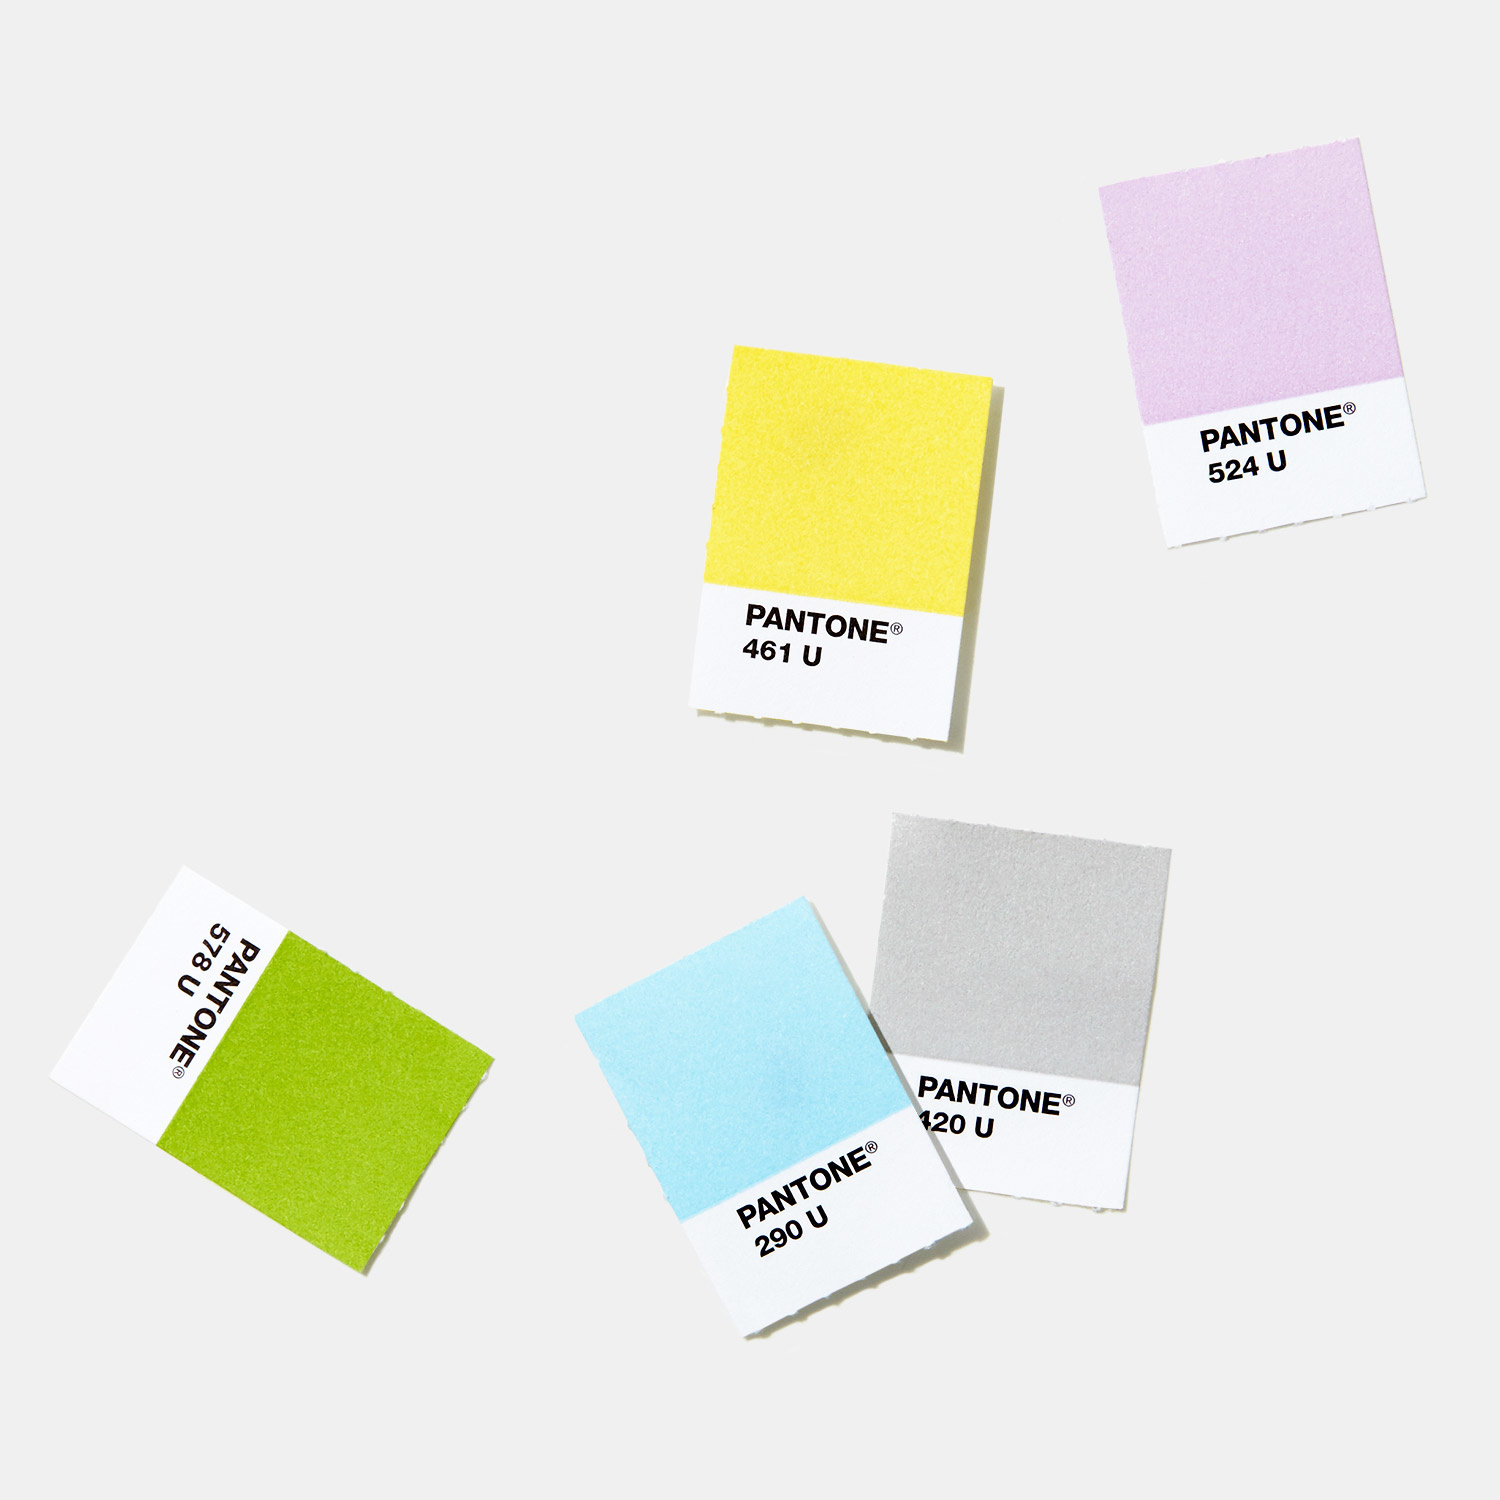 PANTONE PANTONE PLUS Solid Chips (Coated & Uncoated)